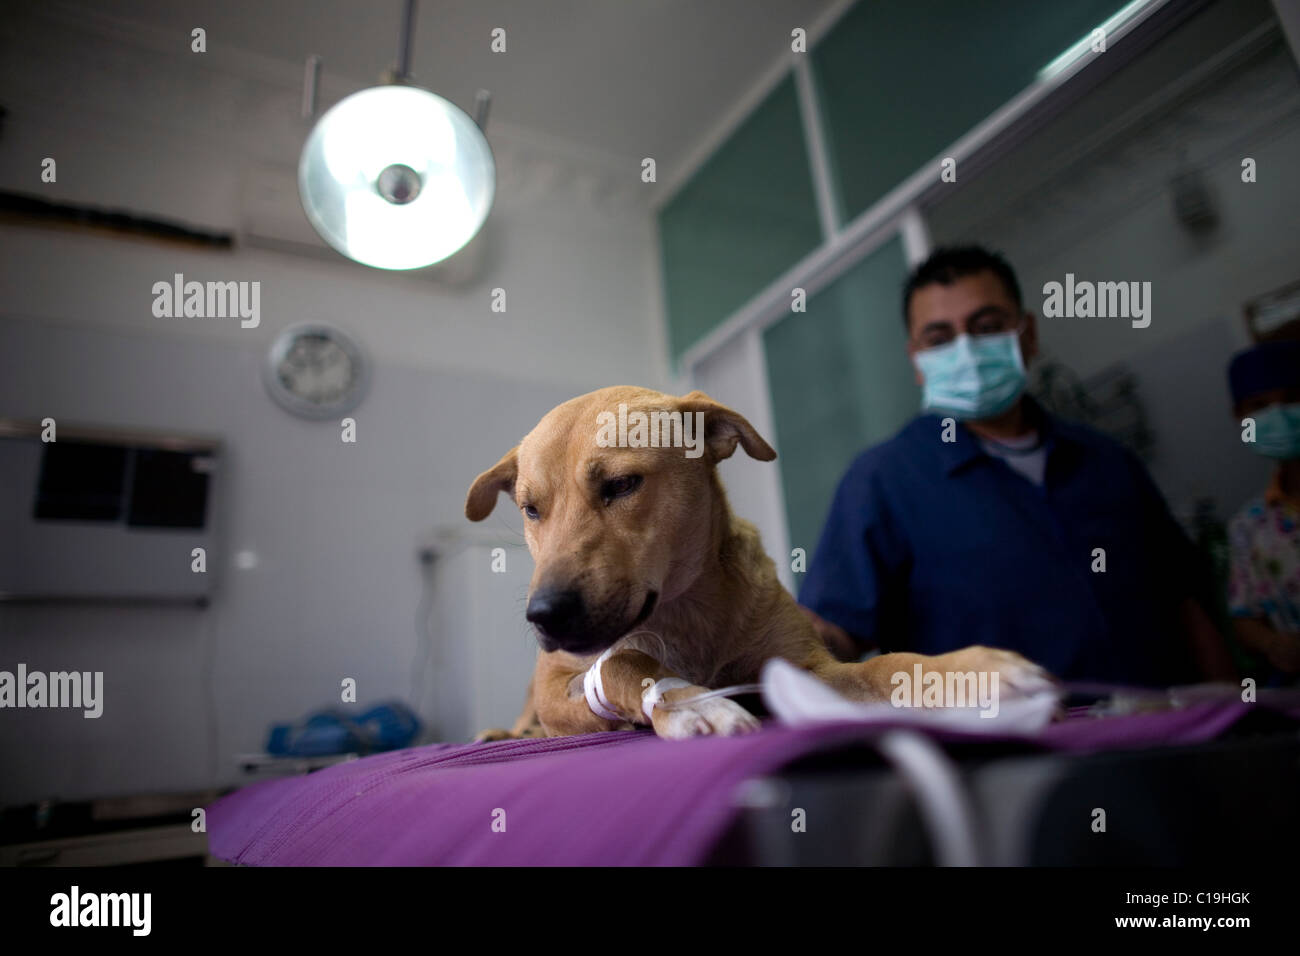 A veterinarian pass by a dog before a surgery at the operating room of a Pet Hospital in Condesa, Mexico City, Mexico, - Stock Image